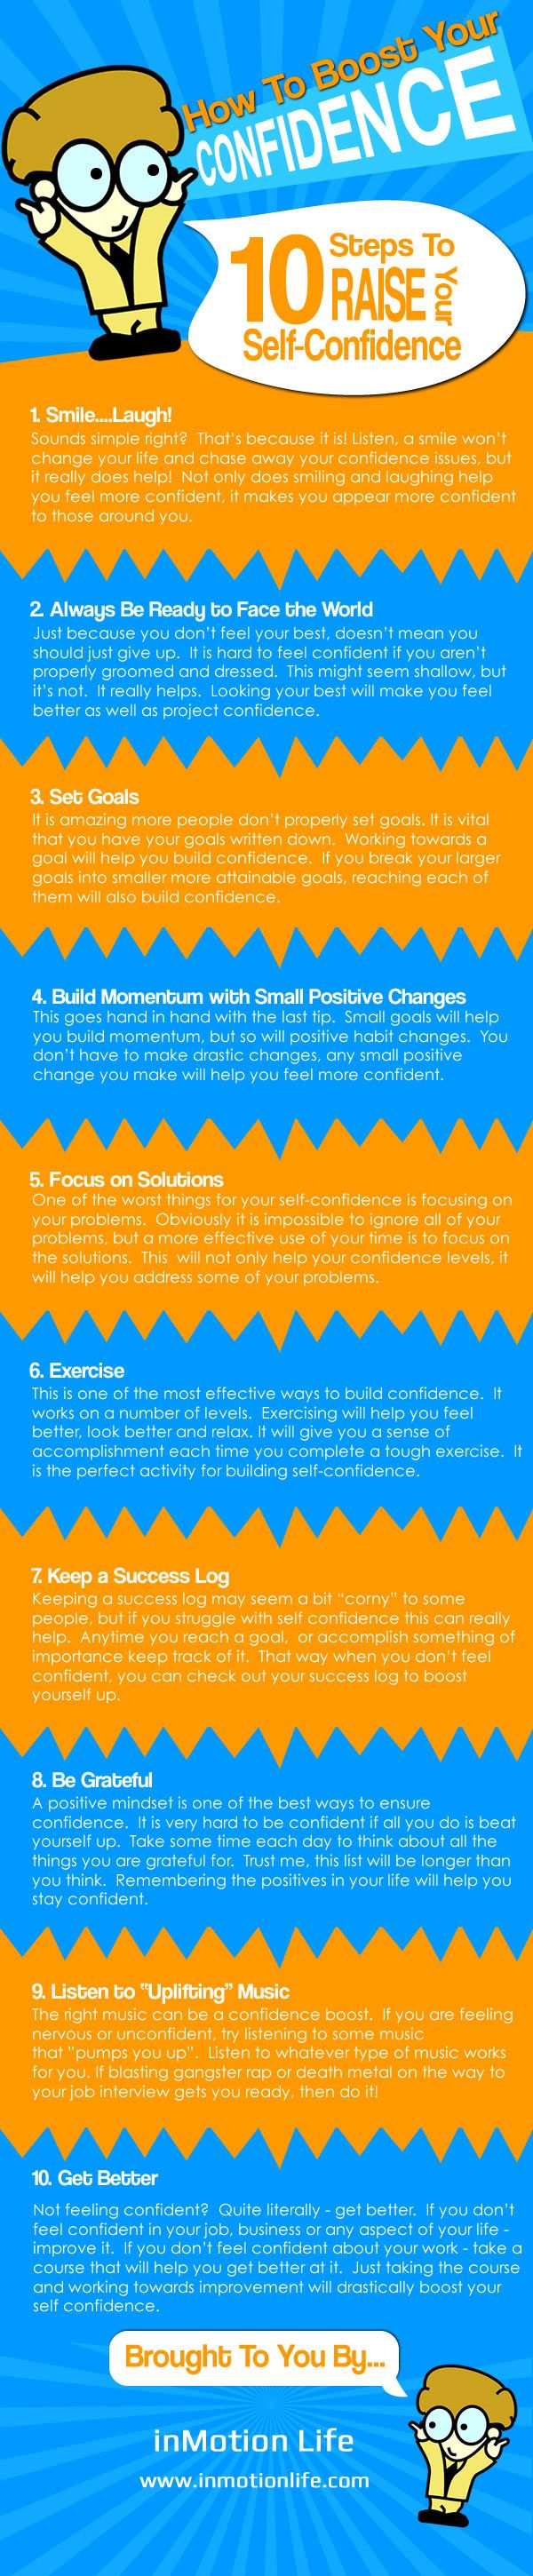 How to Boost Your Confidence [Infographic]